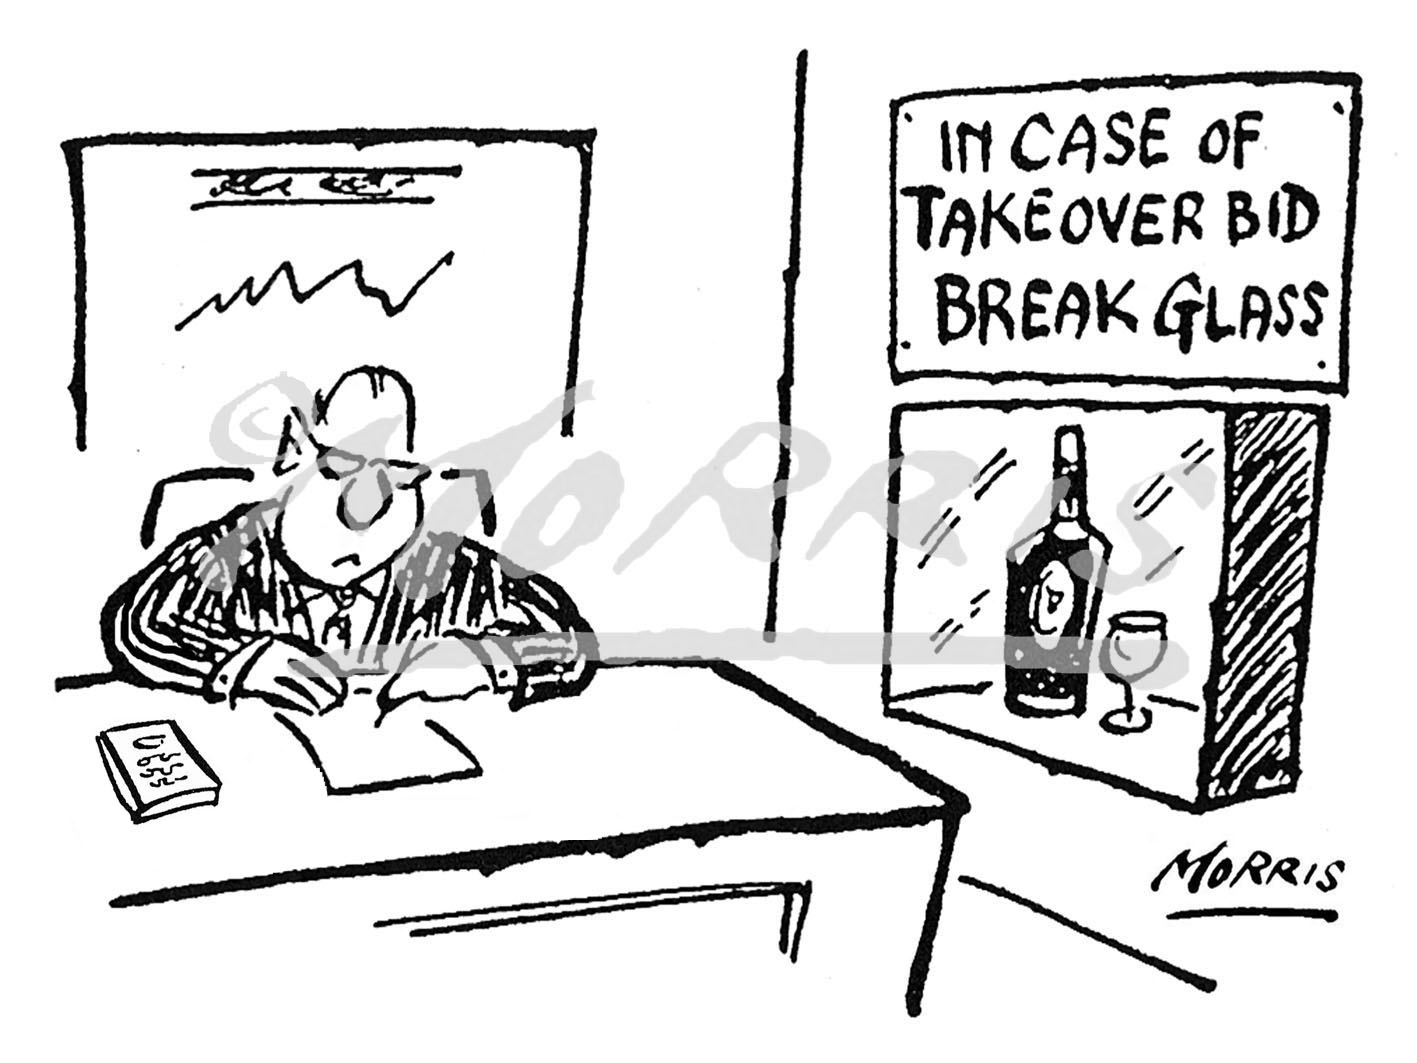 Company takeover bid business cartoon Ref: 0329bw